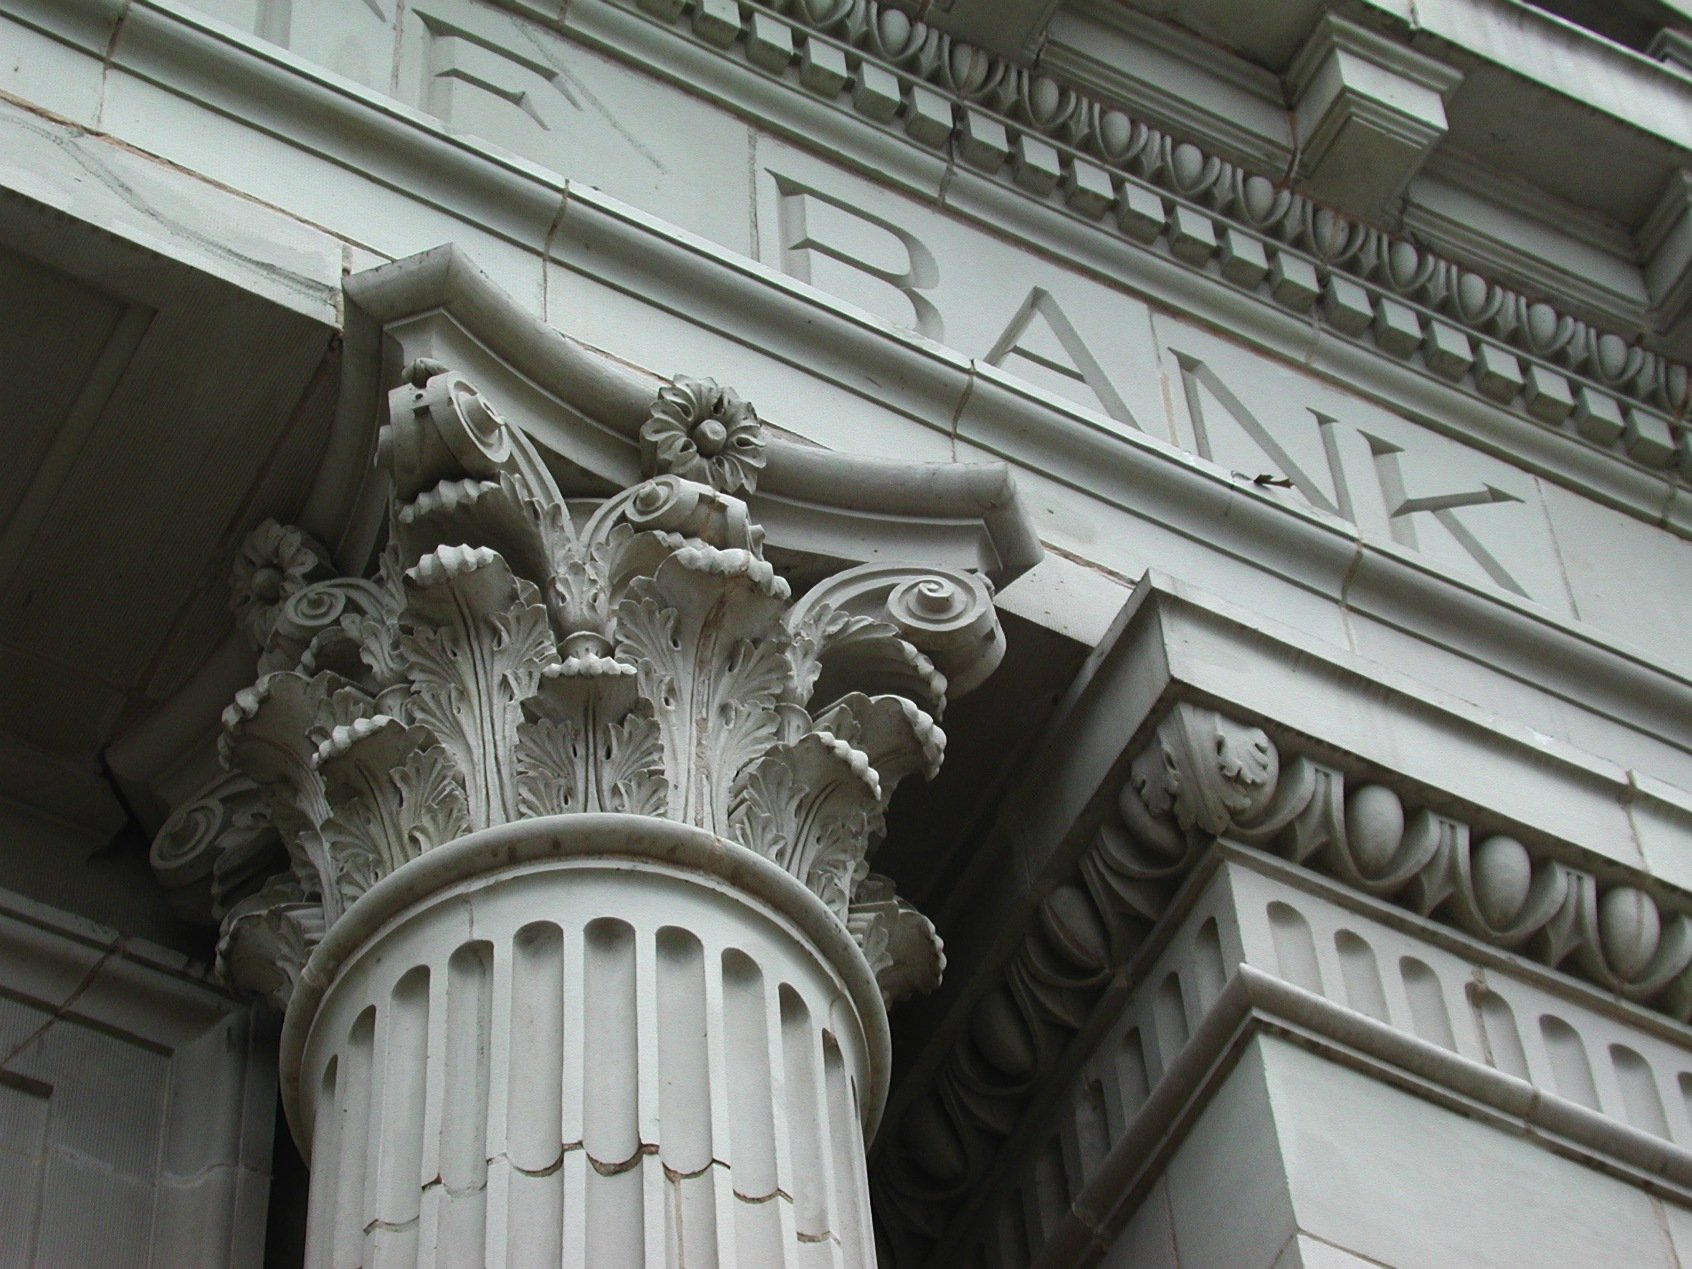 IT BEGINS: Banks Now Dictating What Customers Are Permitted to Purchase with Their Own Money